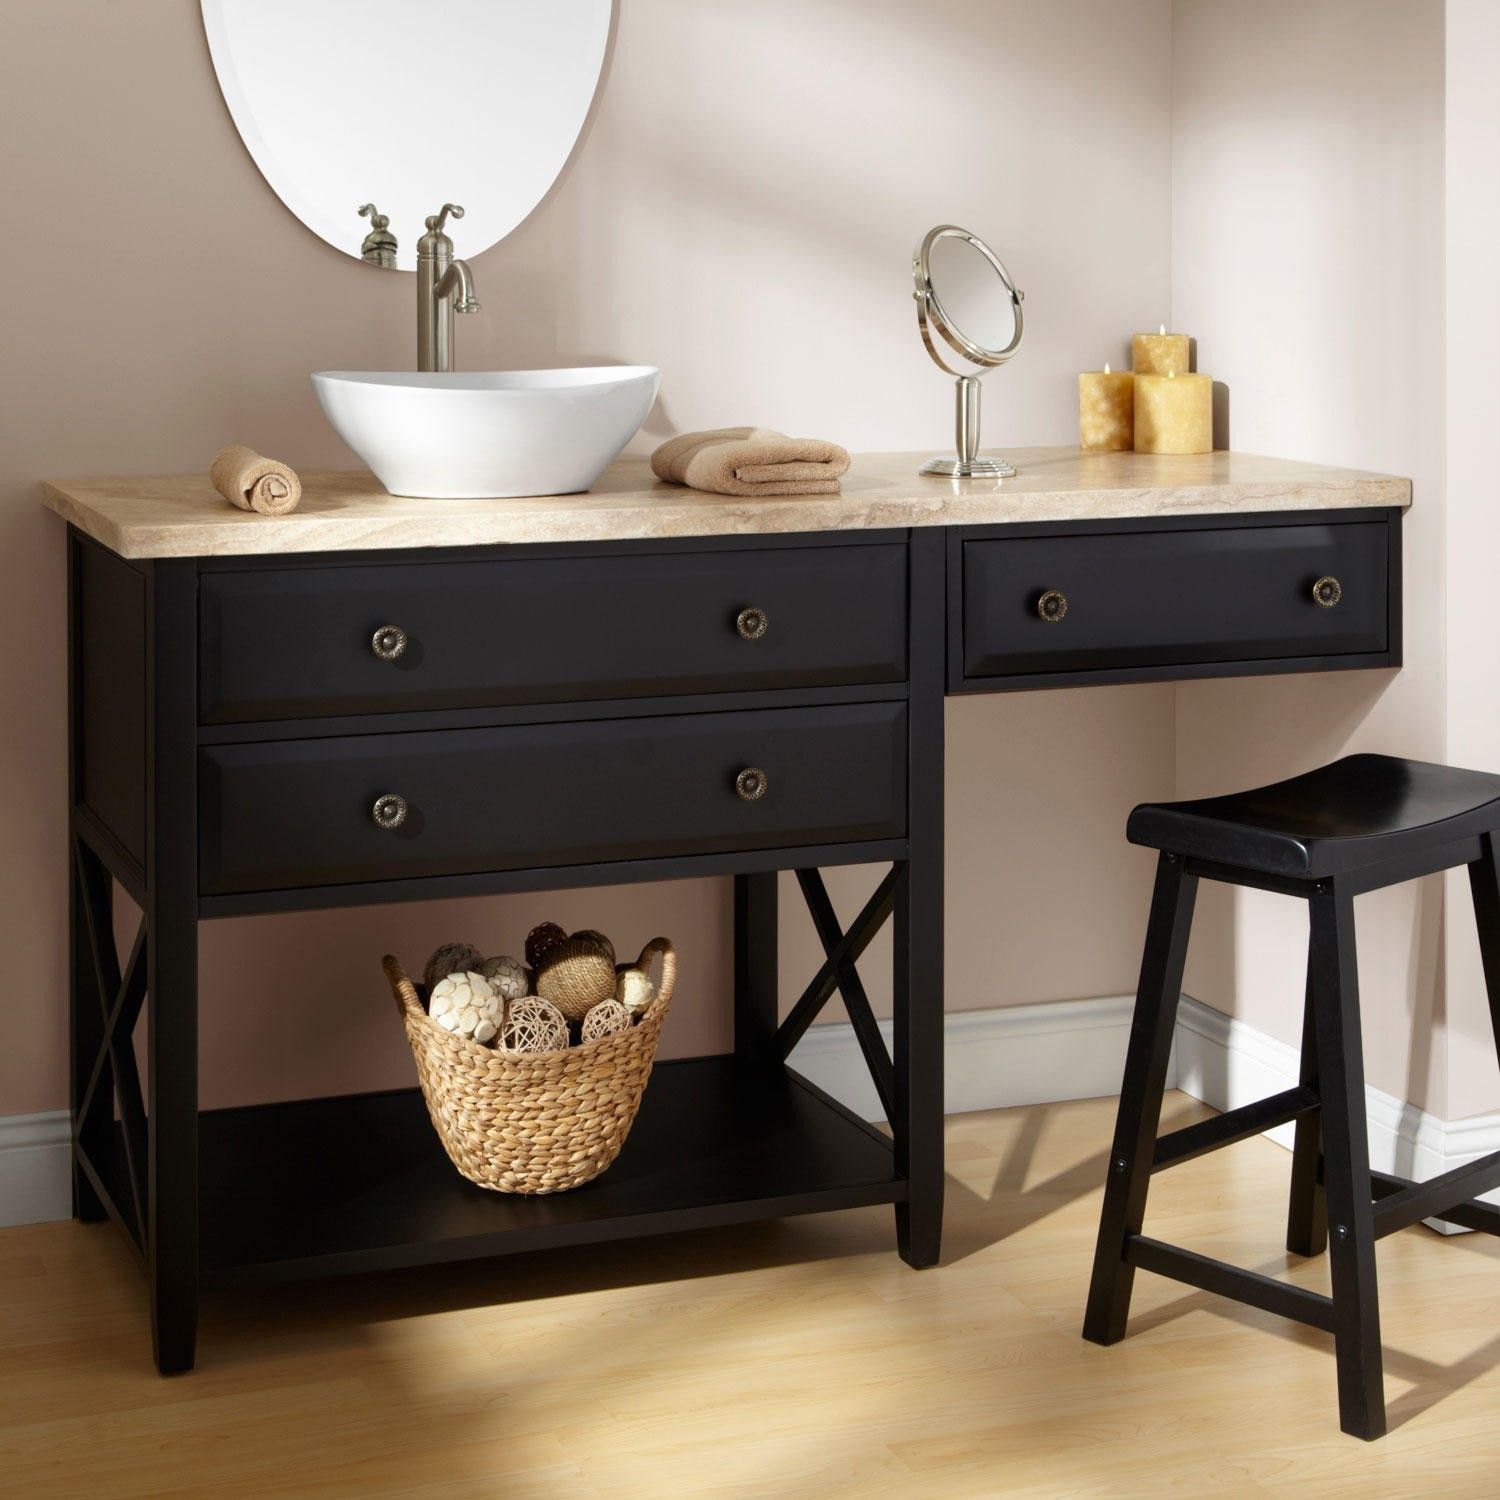 amazing Small Bathroom Vanity With Makeup Area Part - 14: bathroom with makeup vanity ideas offer the perfect combination of  dedicated space, storage, and style to make applying makeup a joy.